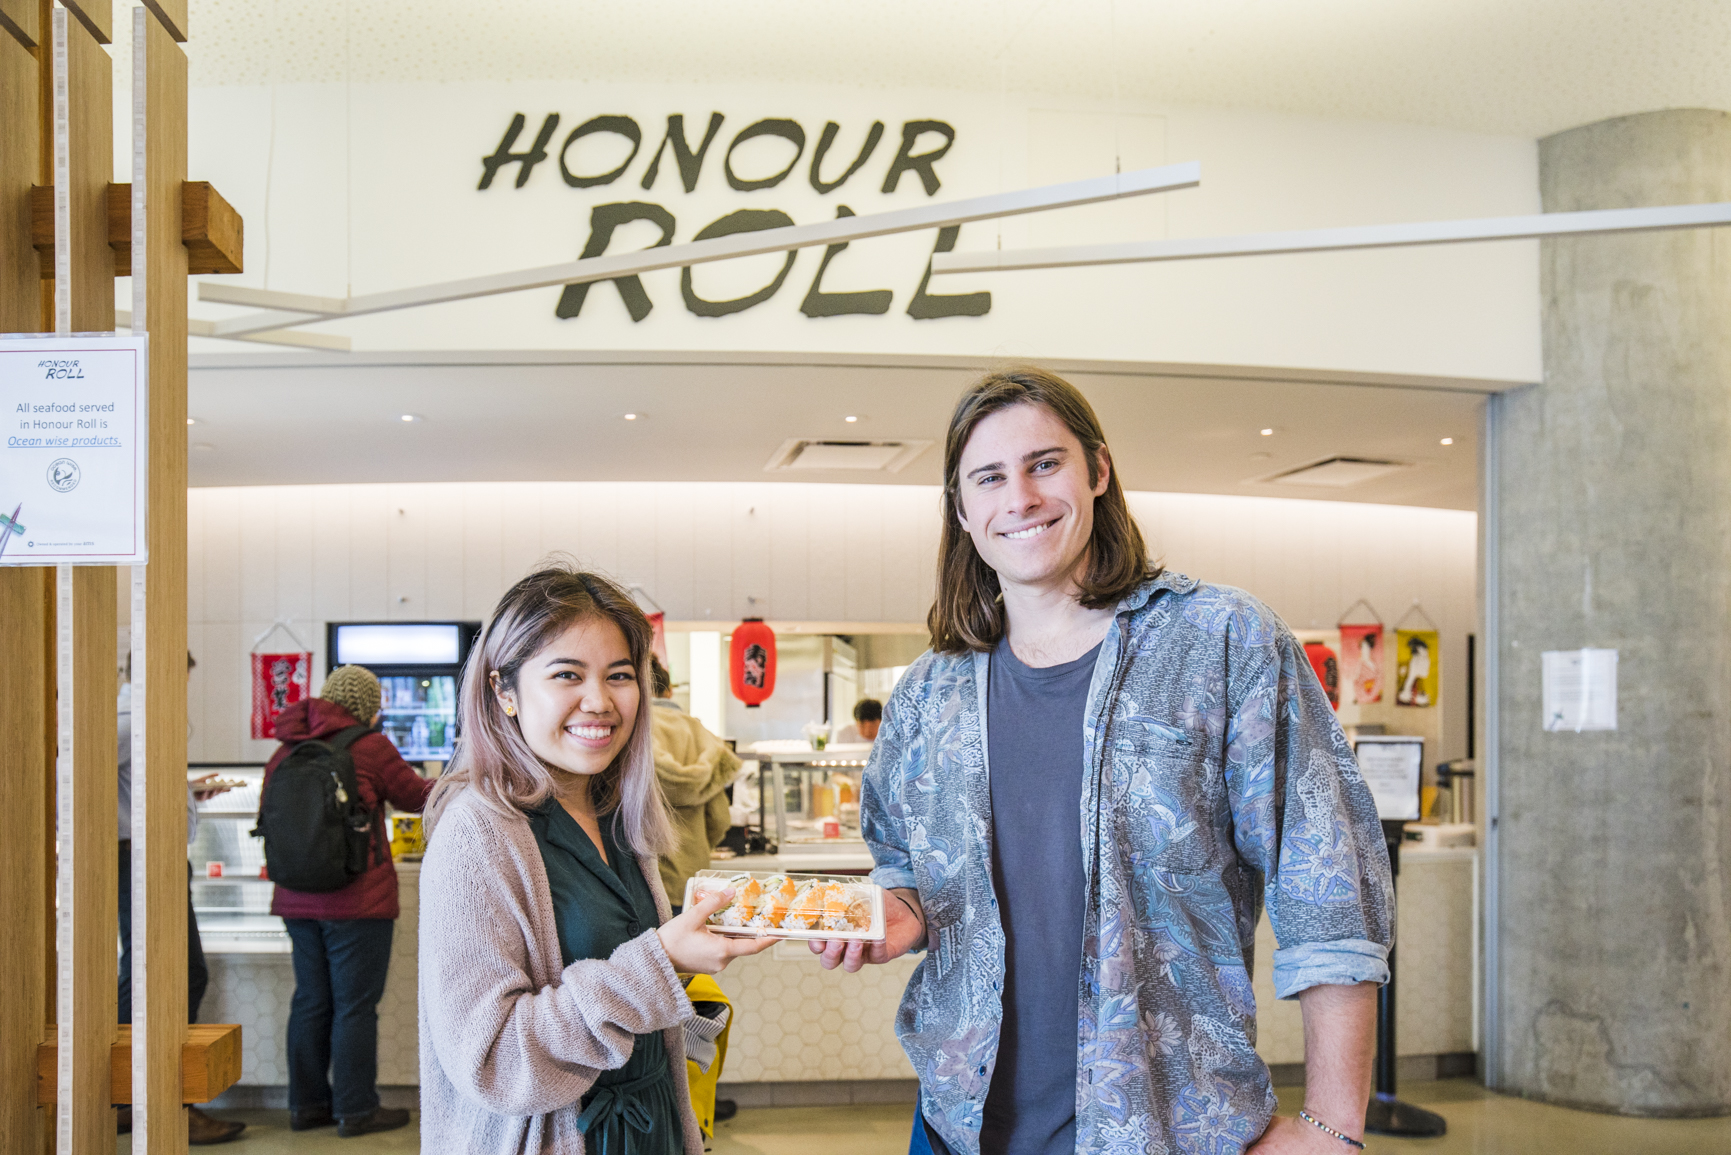 Sara and Aaron standing in front of honour roll